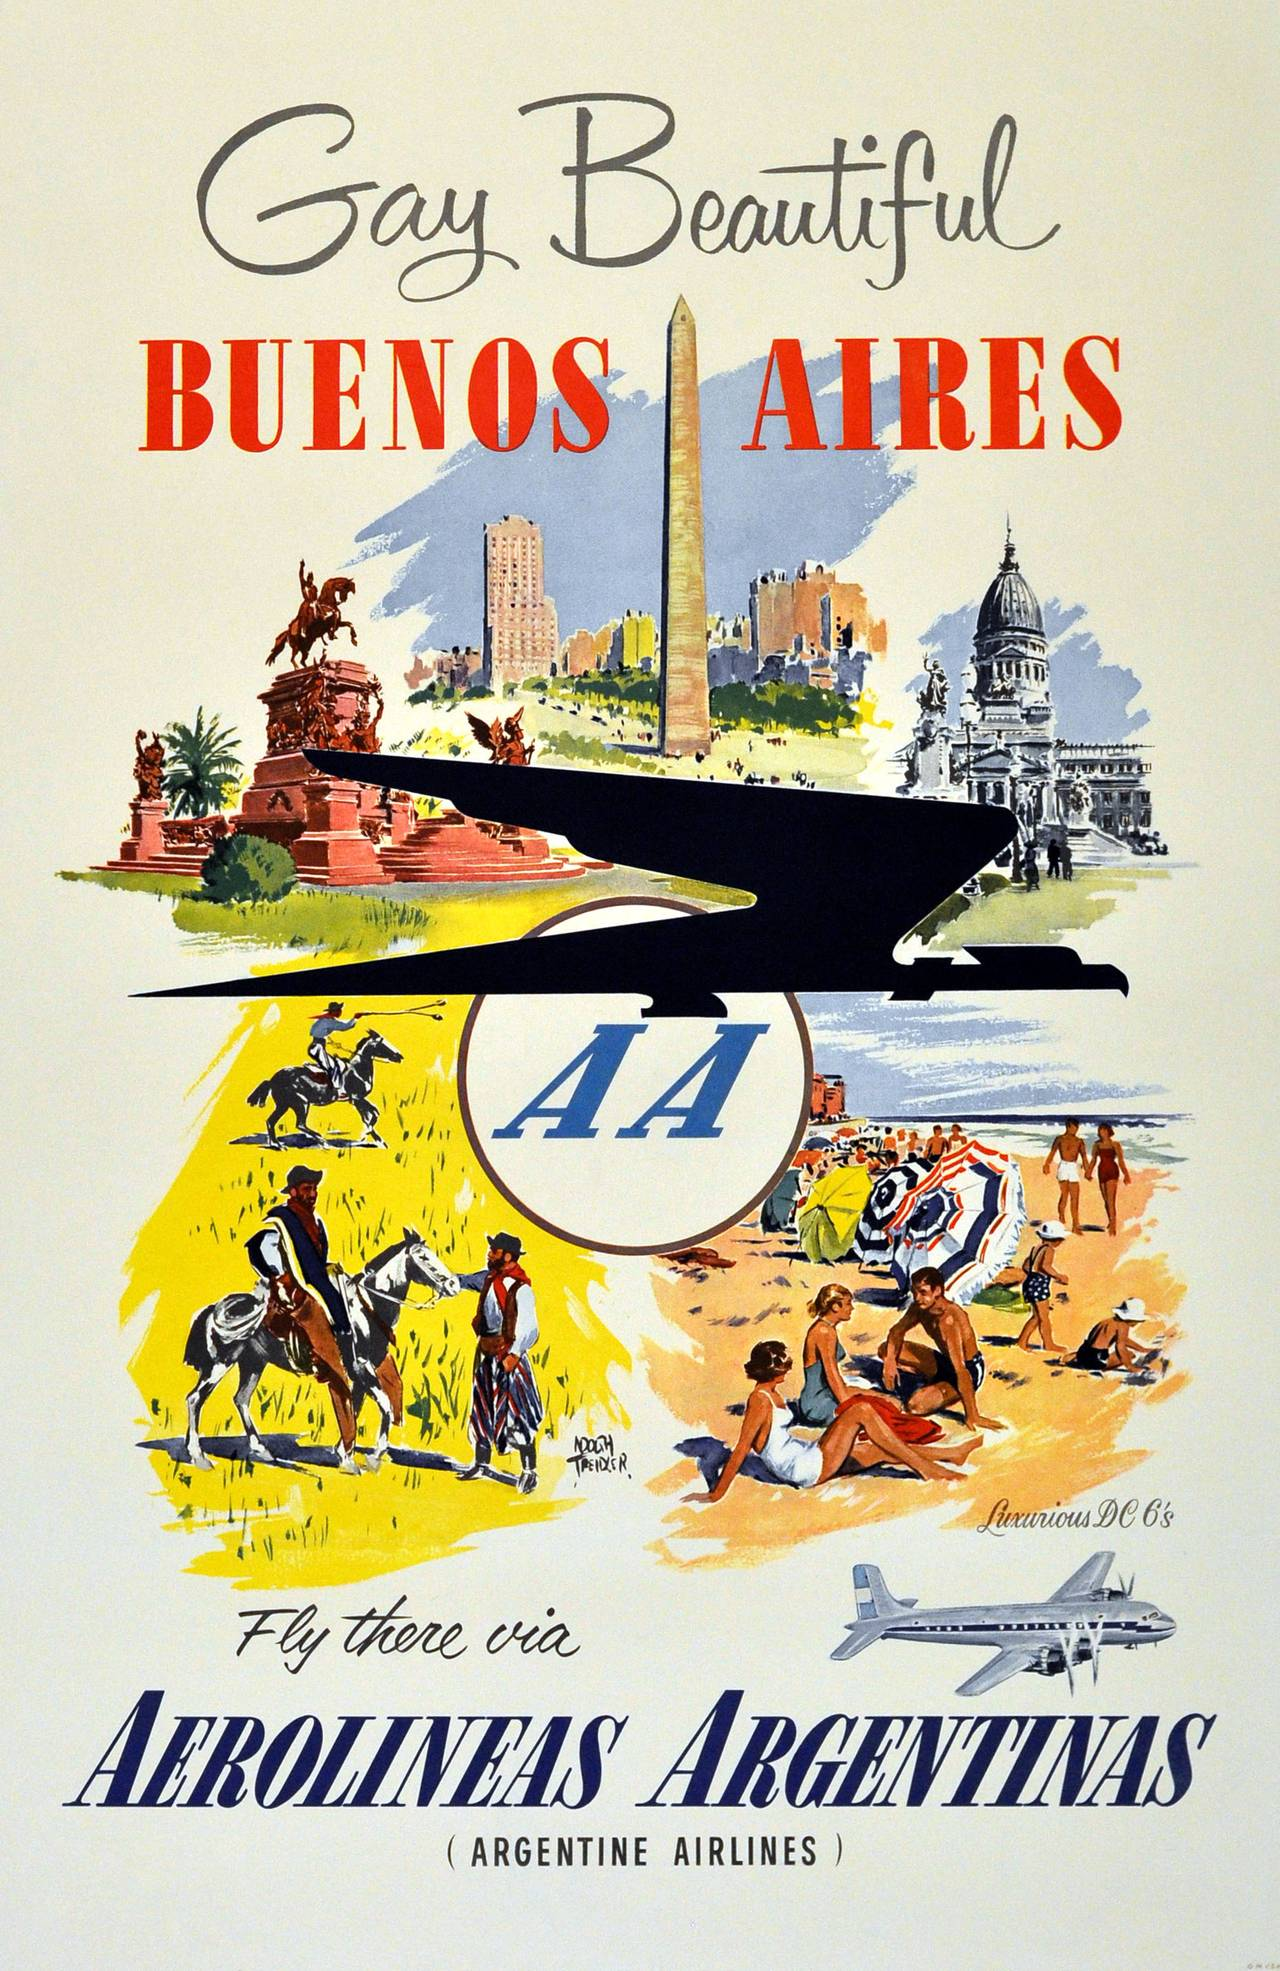 Original Vintage Travel Poster: Gay Beautiful Buenos Aires By Argentine Airlines